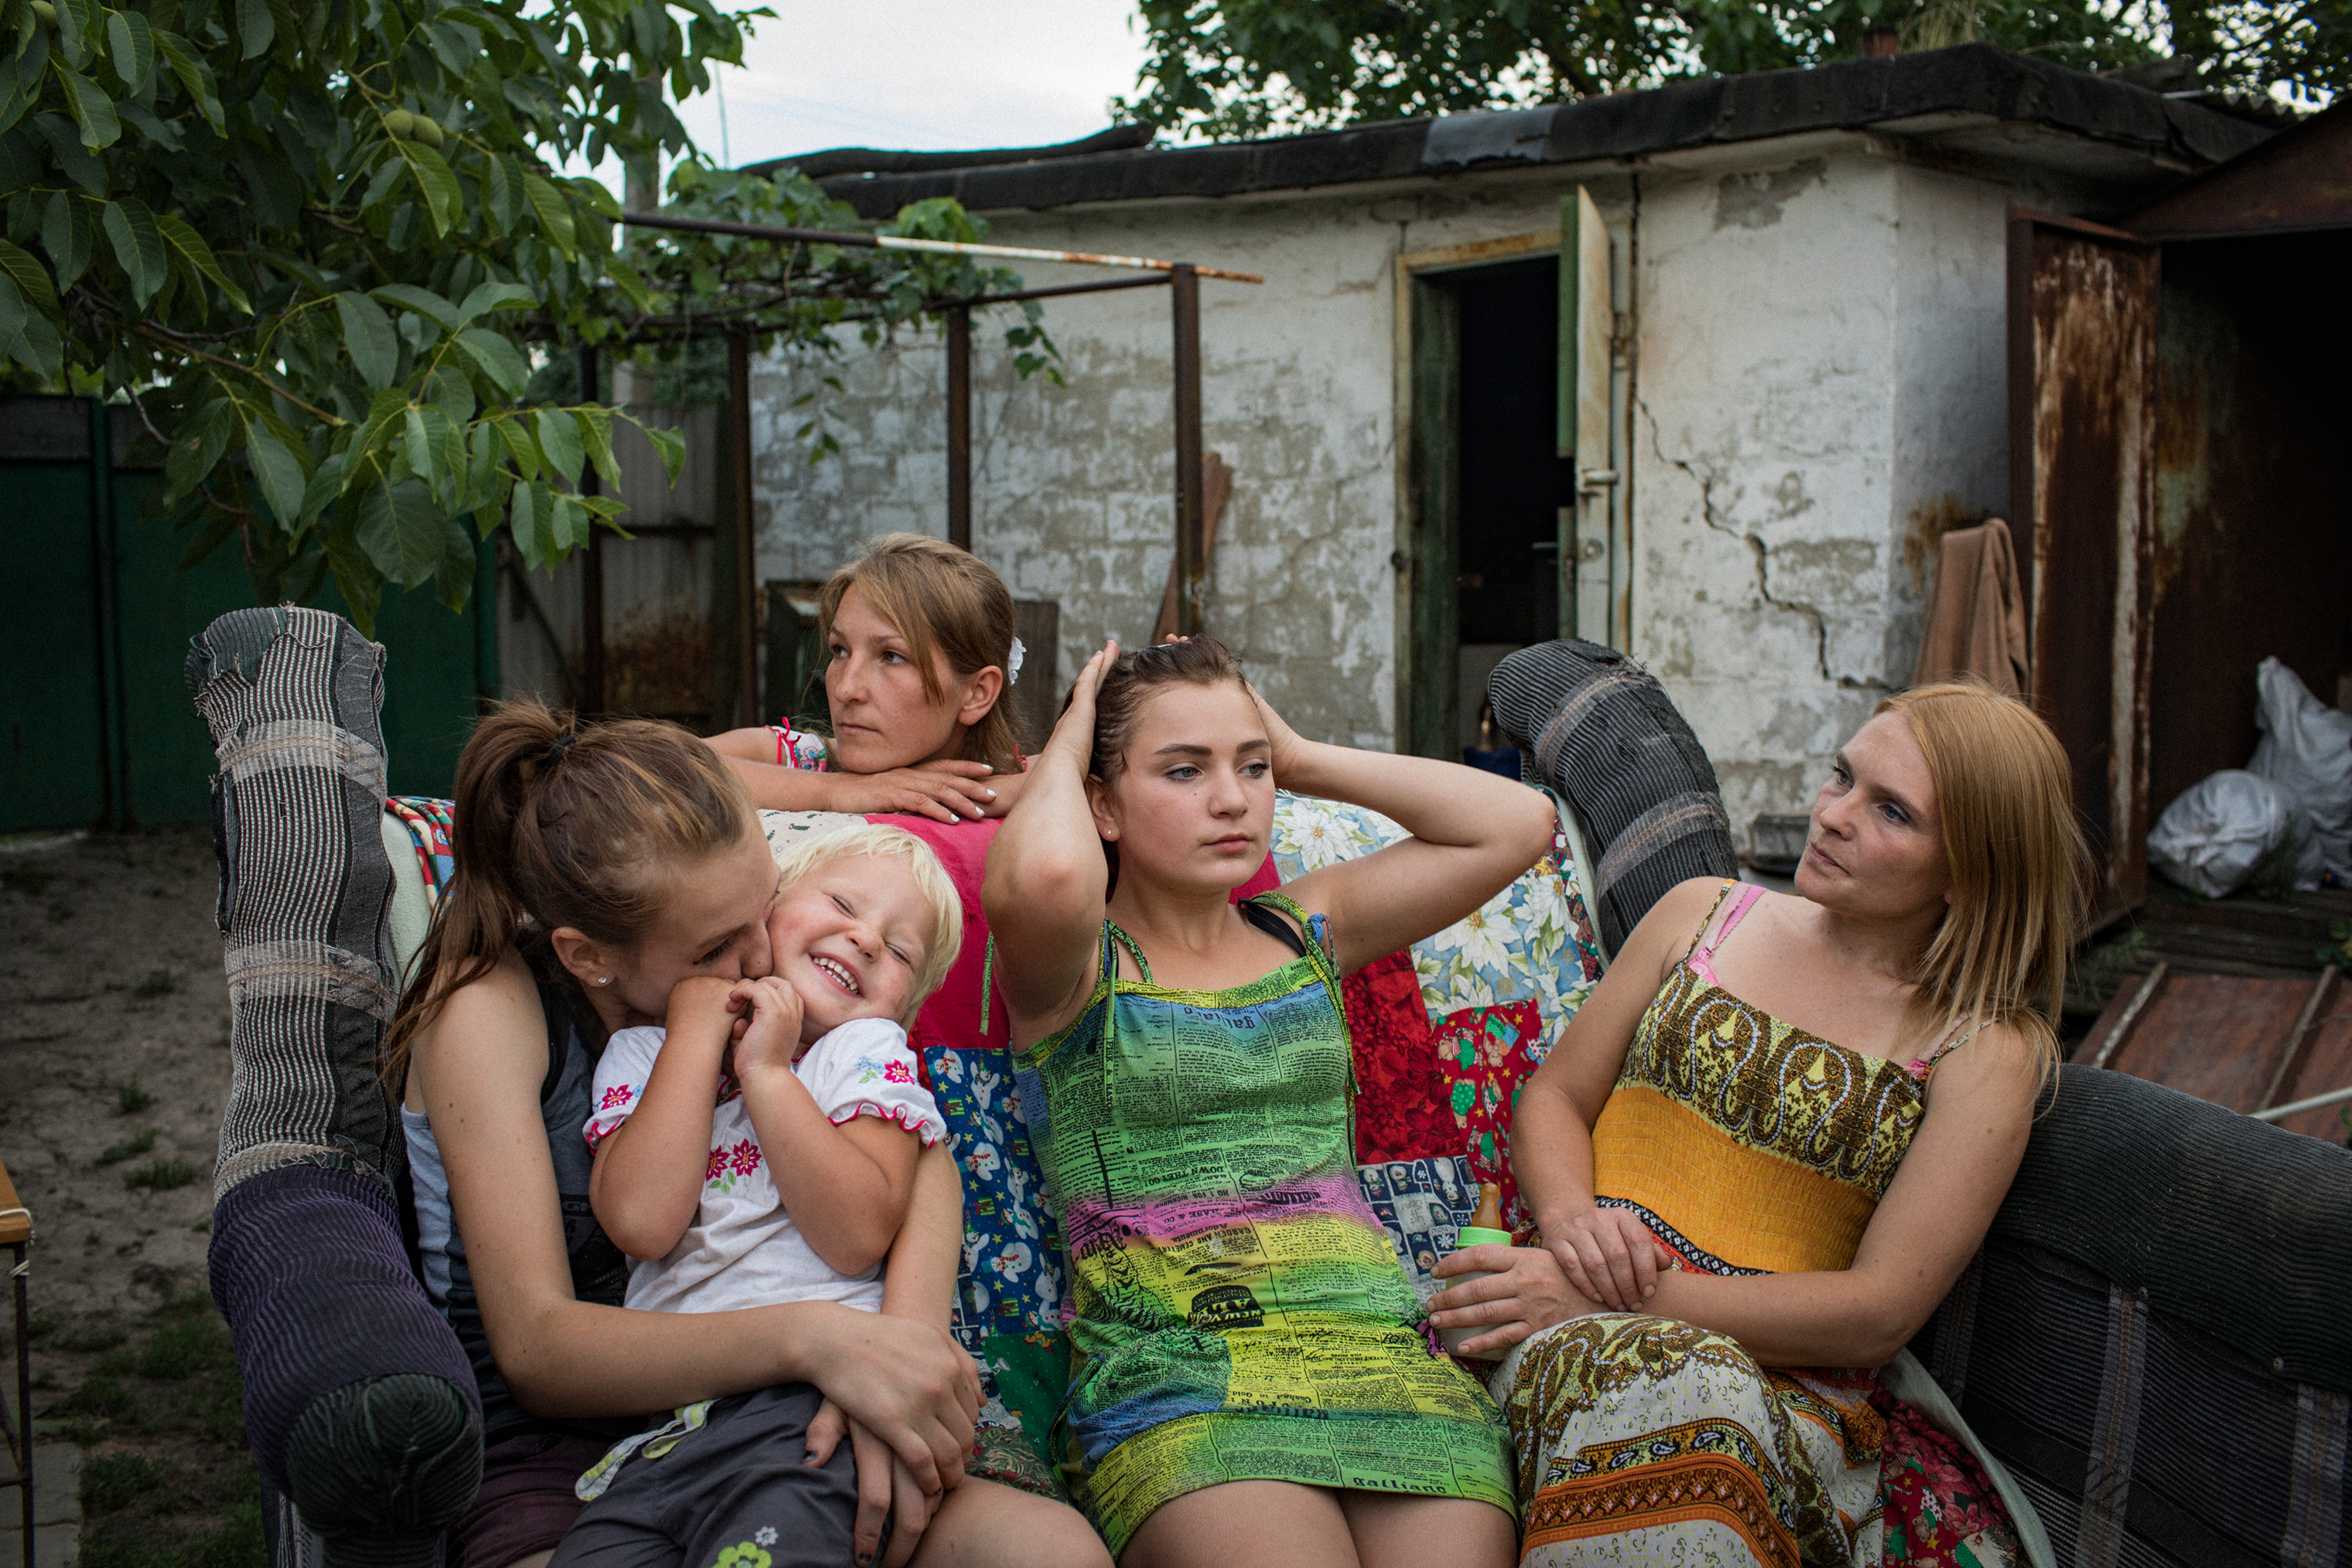 Aleksandra Mountyan, Miroslava Grinik, Olga Grinik, Victoria Mountyan and Valentina Mountyan—all members of an extended family—hang out in the backyard of Olga's house, located 50 meters from a Ukrainian military position in old Avdeevka. People may appear relaxed to the sounds of shelling and gunfire, but it's an illusion: they listen to determine the degree of danger. Everyone knows the safest place in their home.